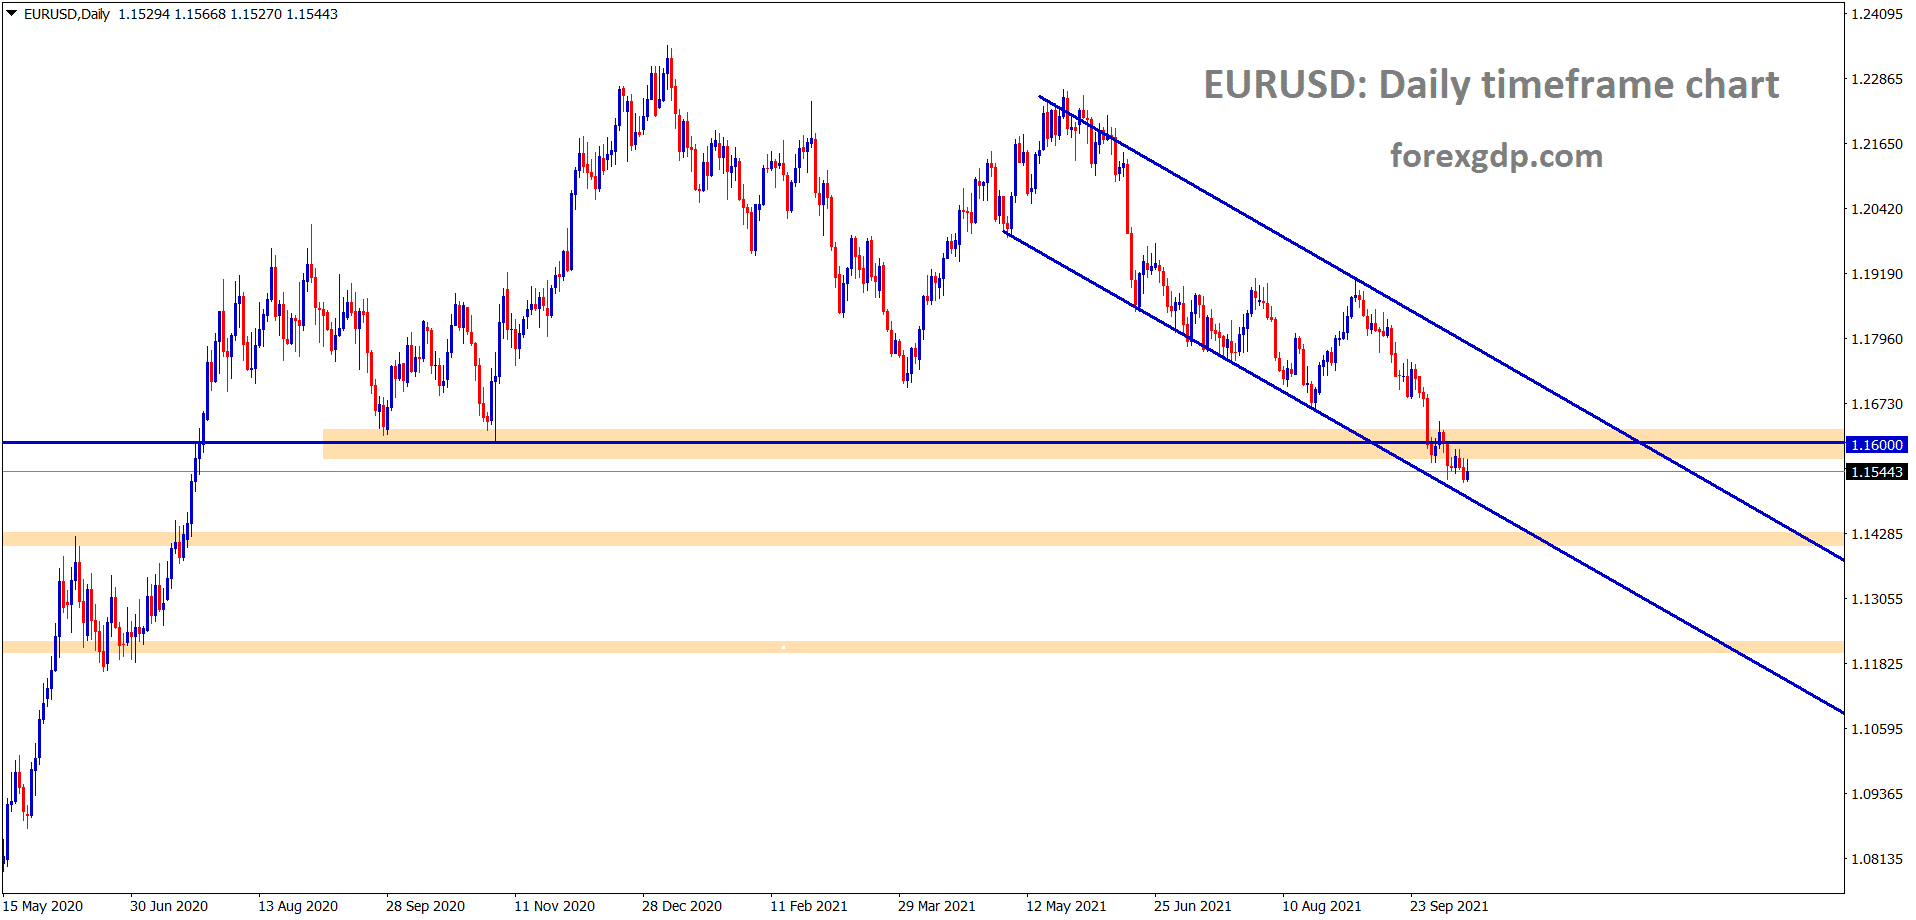 EURUSD is consolidating at the support and the lower low level of the descending channel for a long time